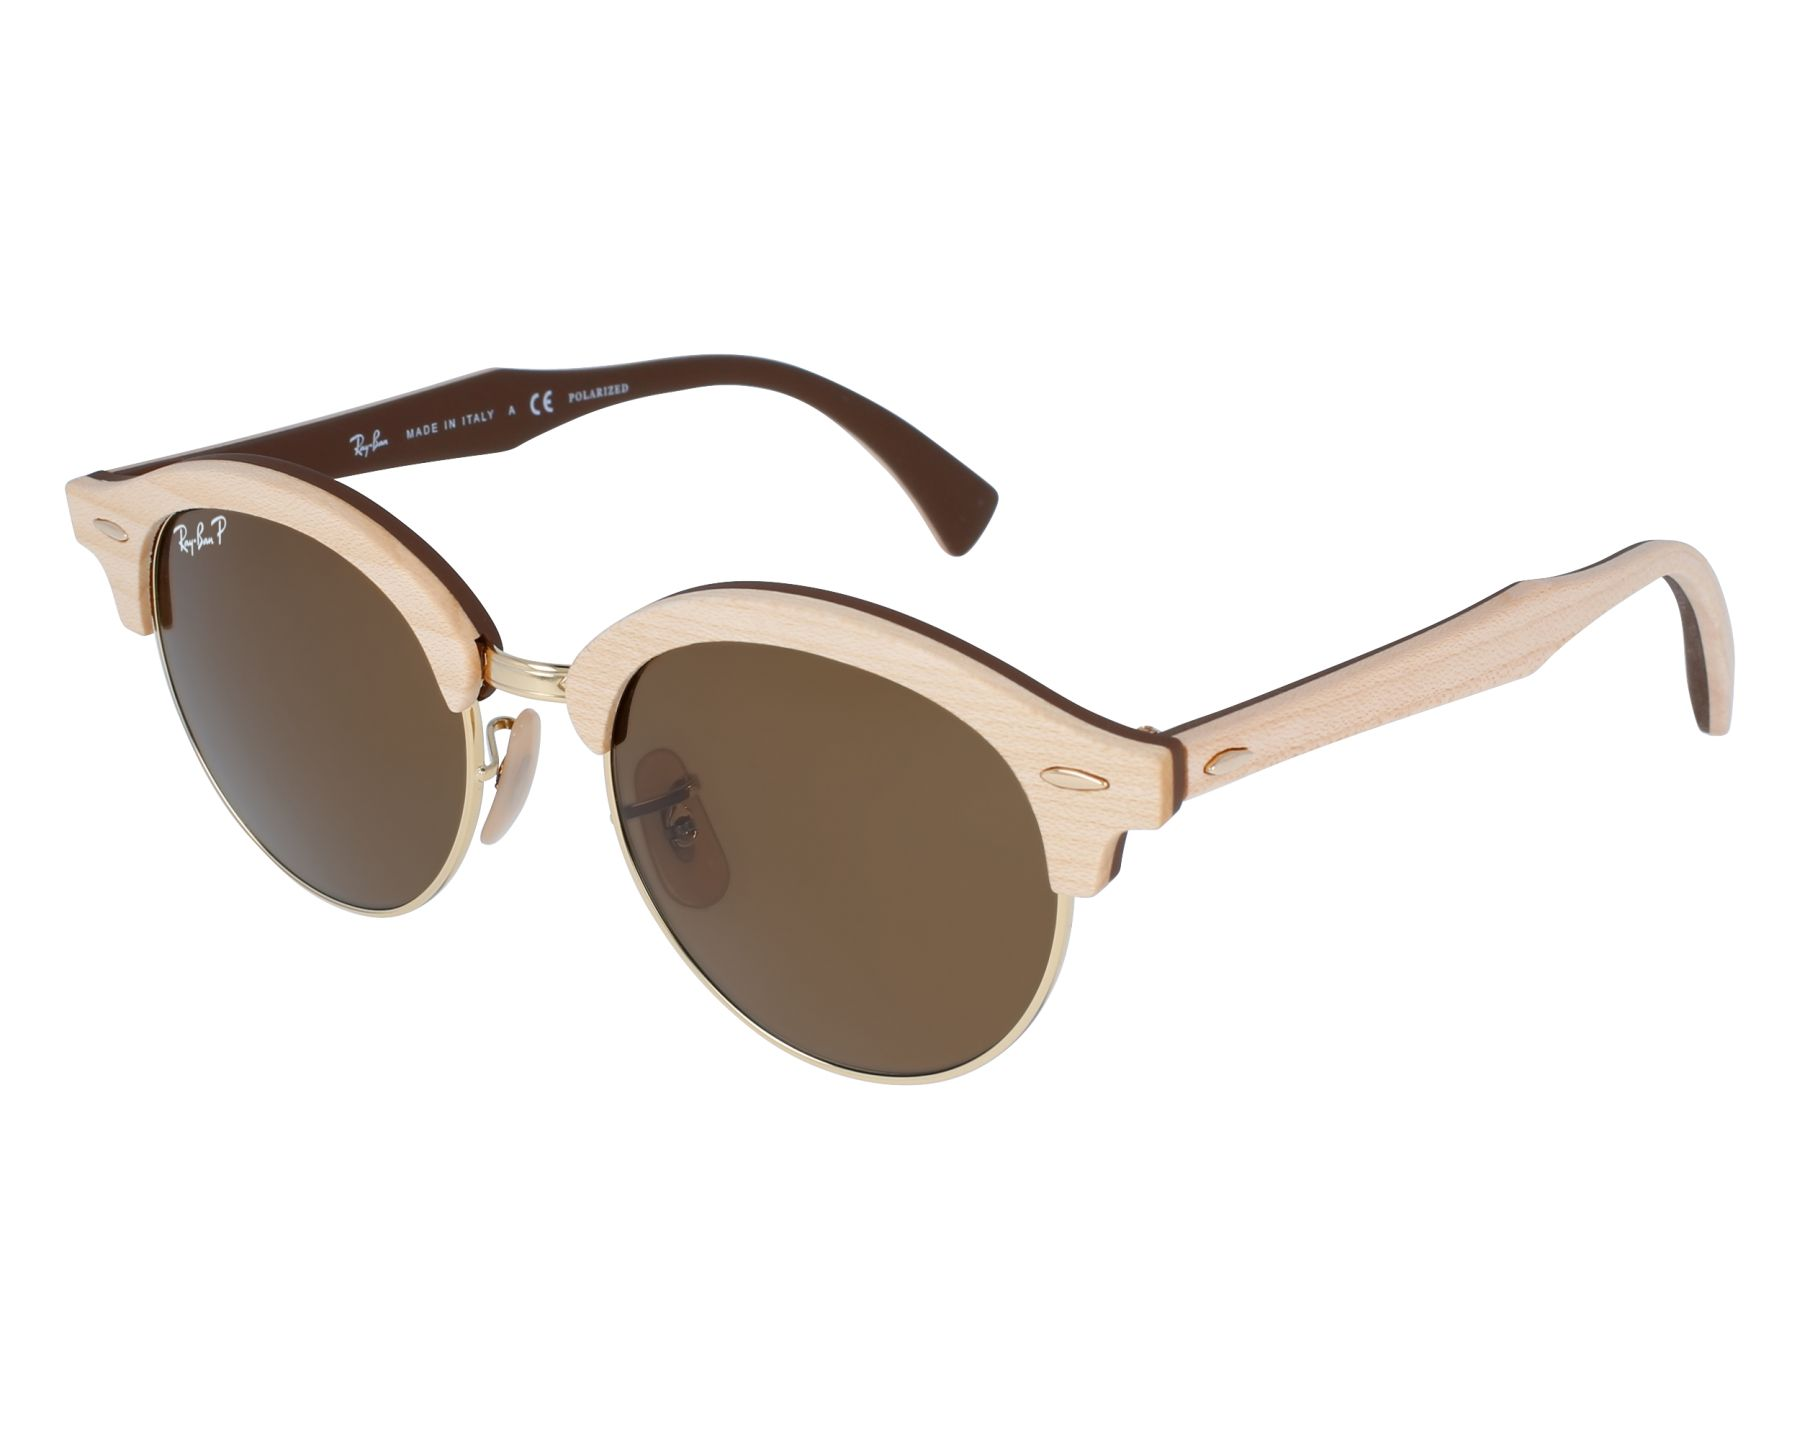 Ray-Ban Sunglasses RB-4246-M 1179/57 Wood with Brown grey